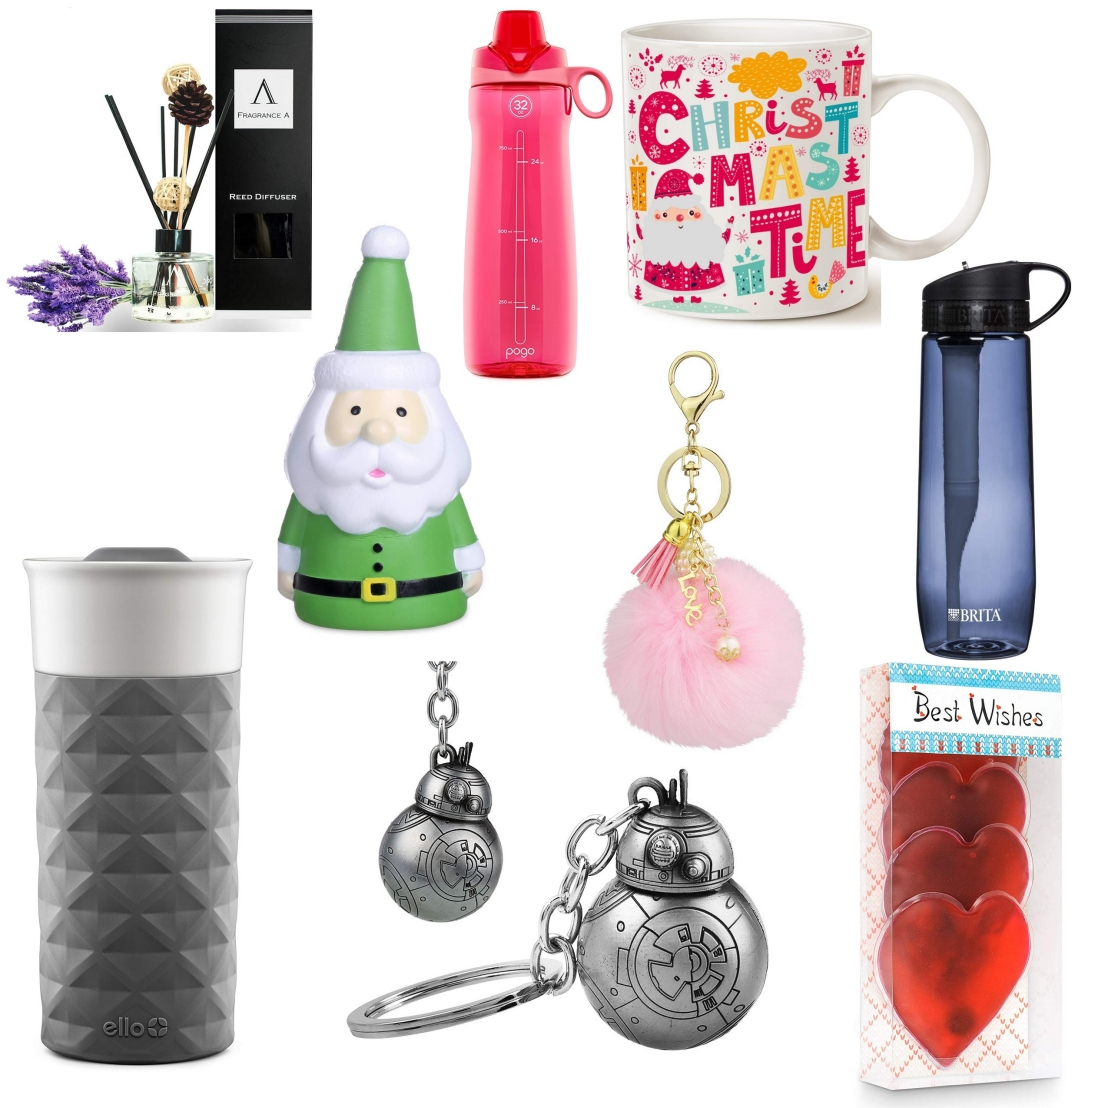 A collage of stocking filler ideas - part 2